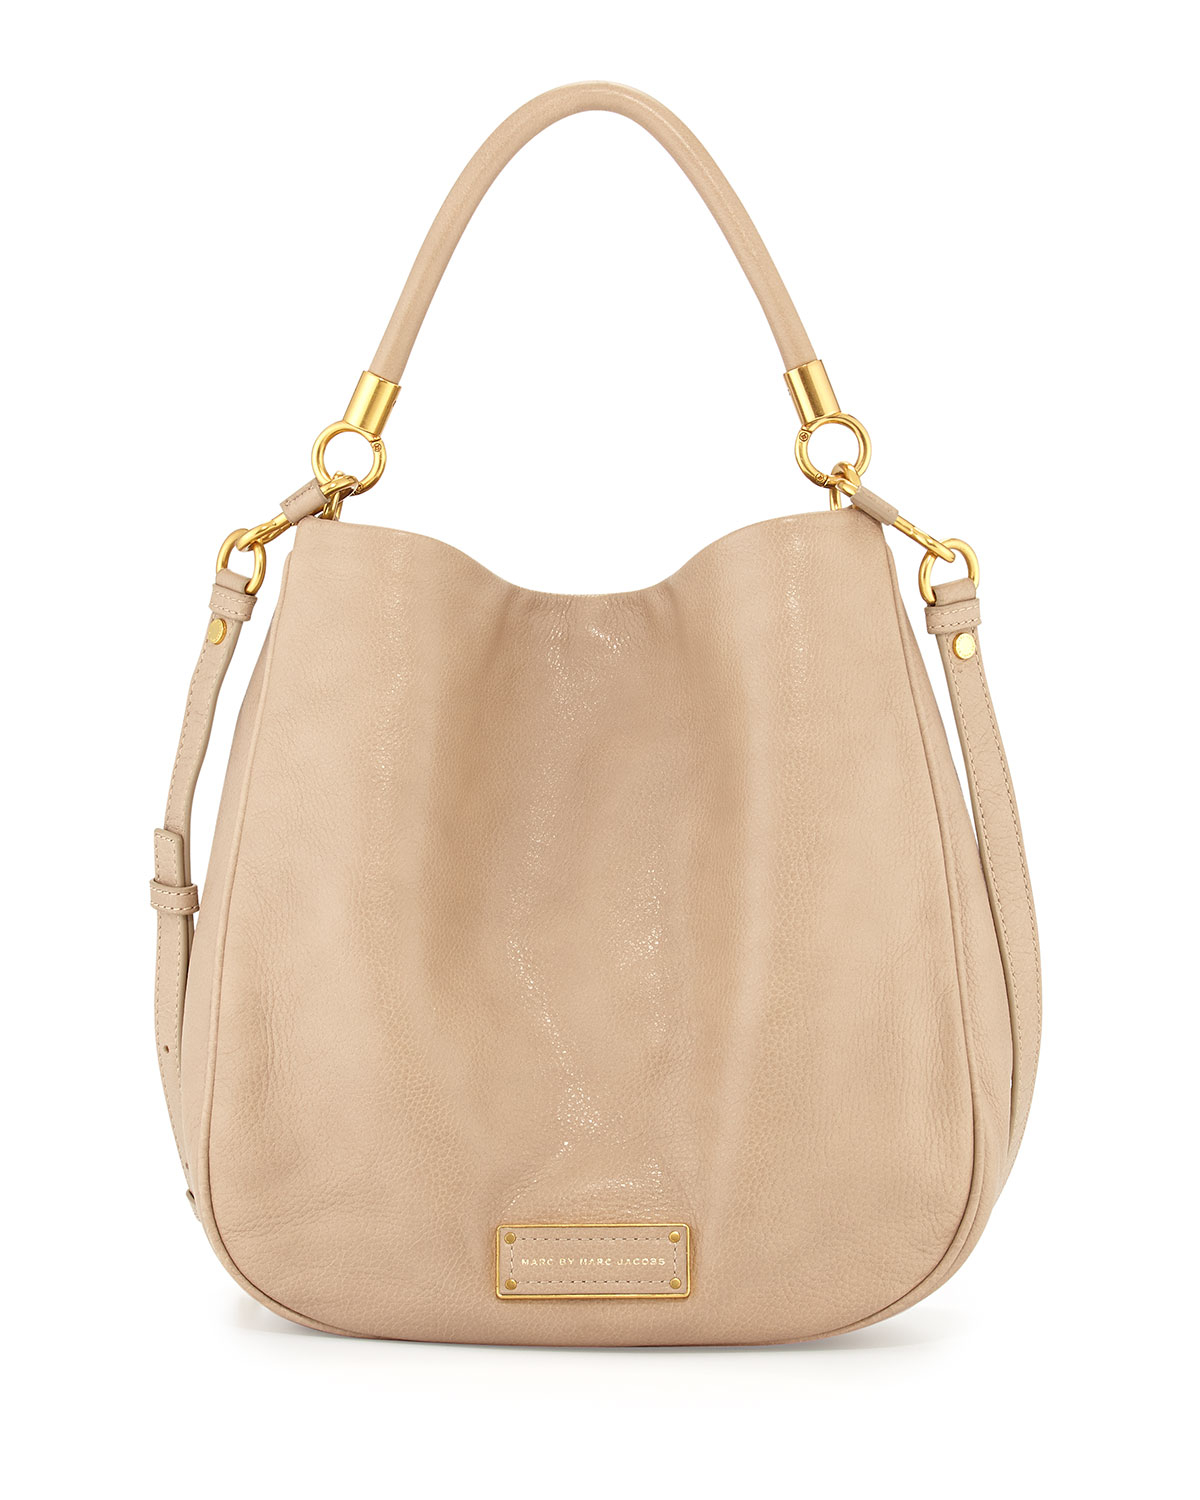 marc by marc jacobs too hot to handle hobo bag in brown tracker tan lyst. Black Bedroom Furniture Sets. Home Design Ideas